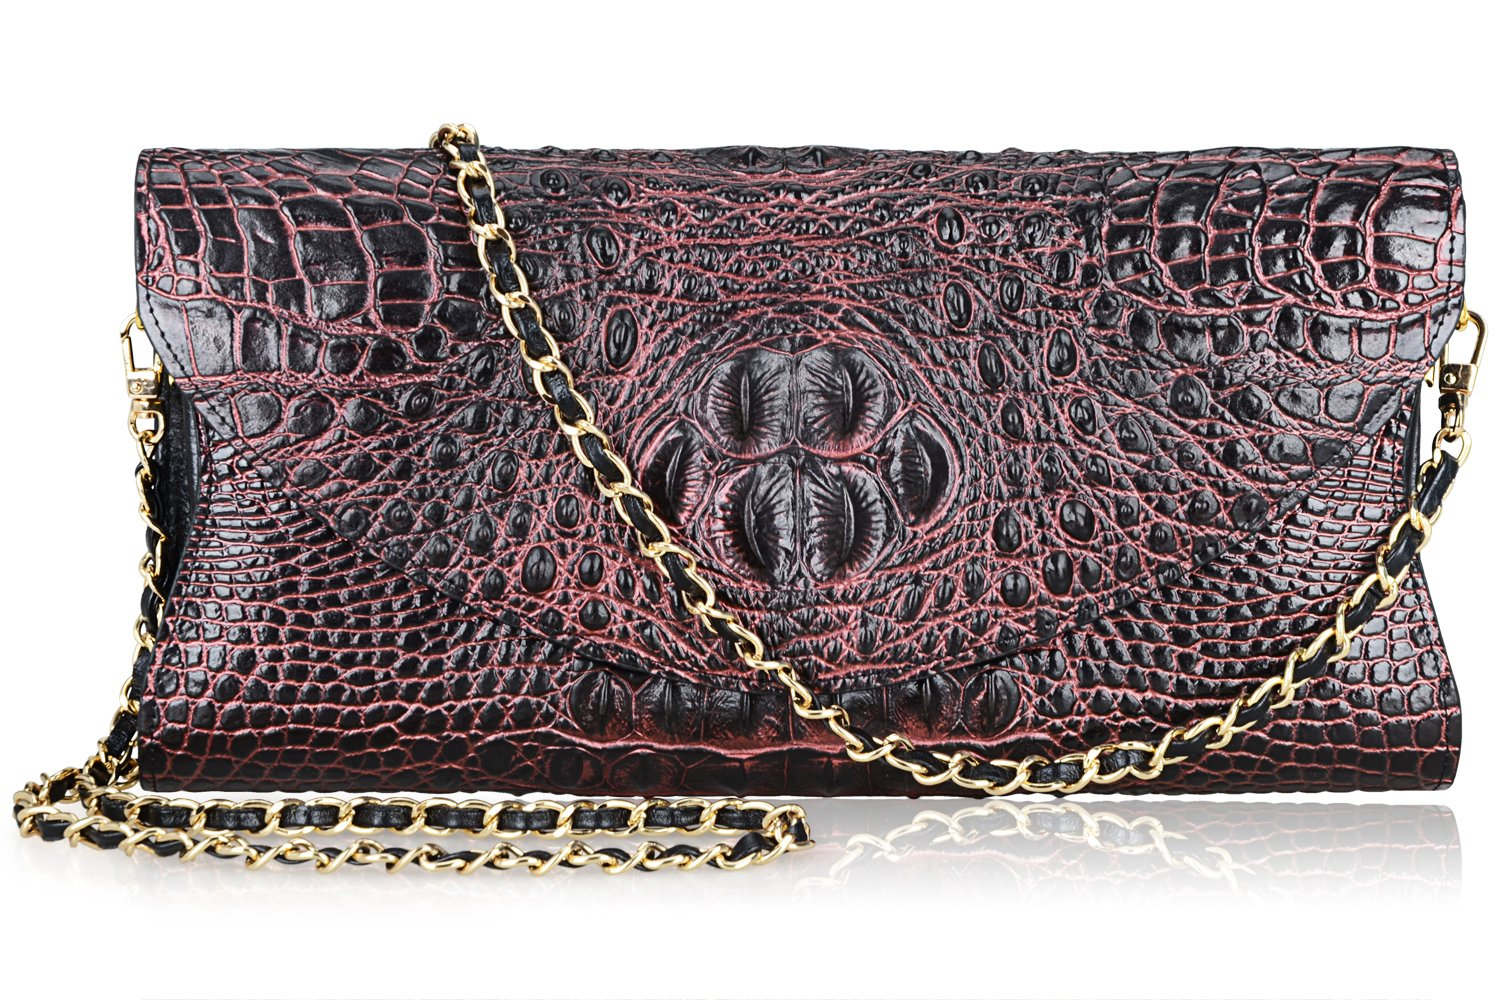 PIJUSHI Women's Genuine Leather Embossed Crocodile Evening Party Clutches Handbags Shoulder Bag (66115, Black/Red)